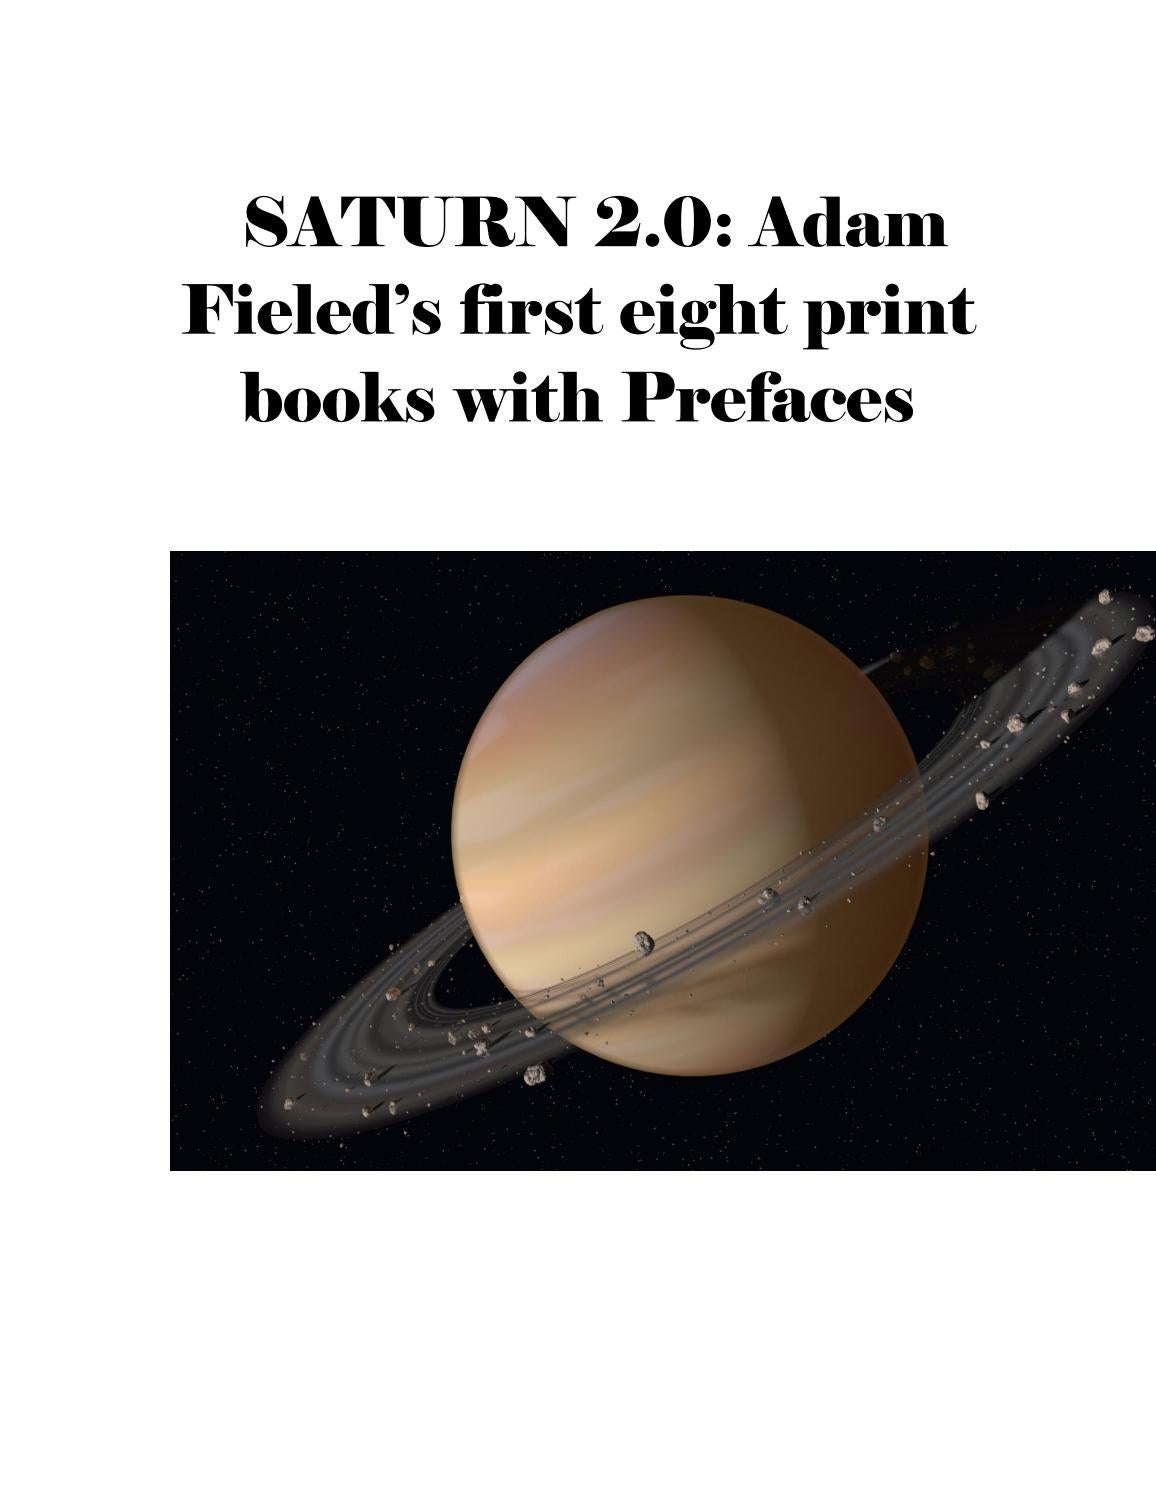 Saturn 2 0: Adam Fieled's 1st Eight Print Books with